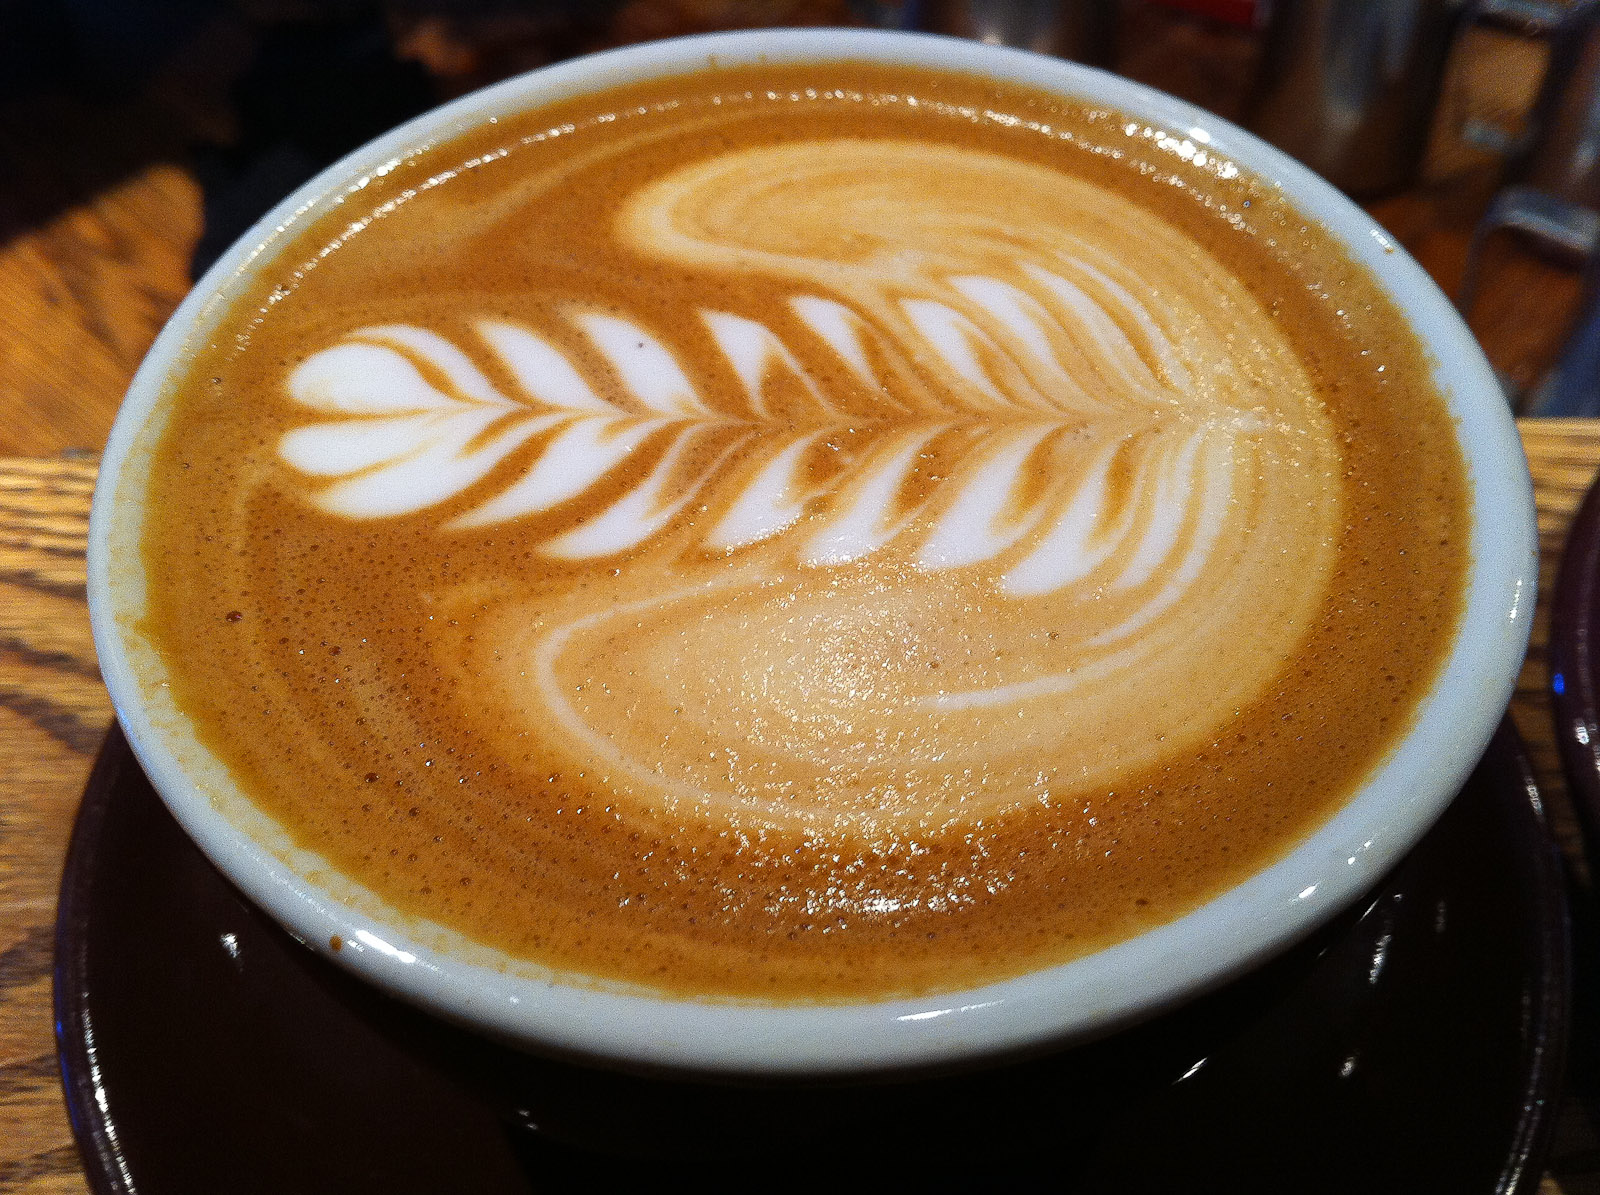 Cafe Myriade - Another Latte